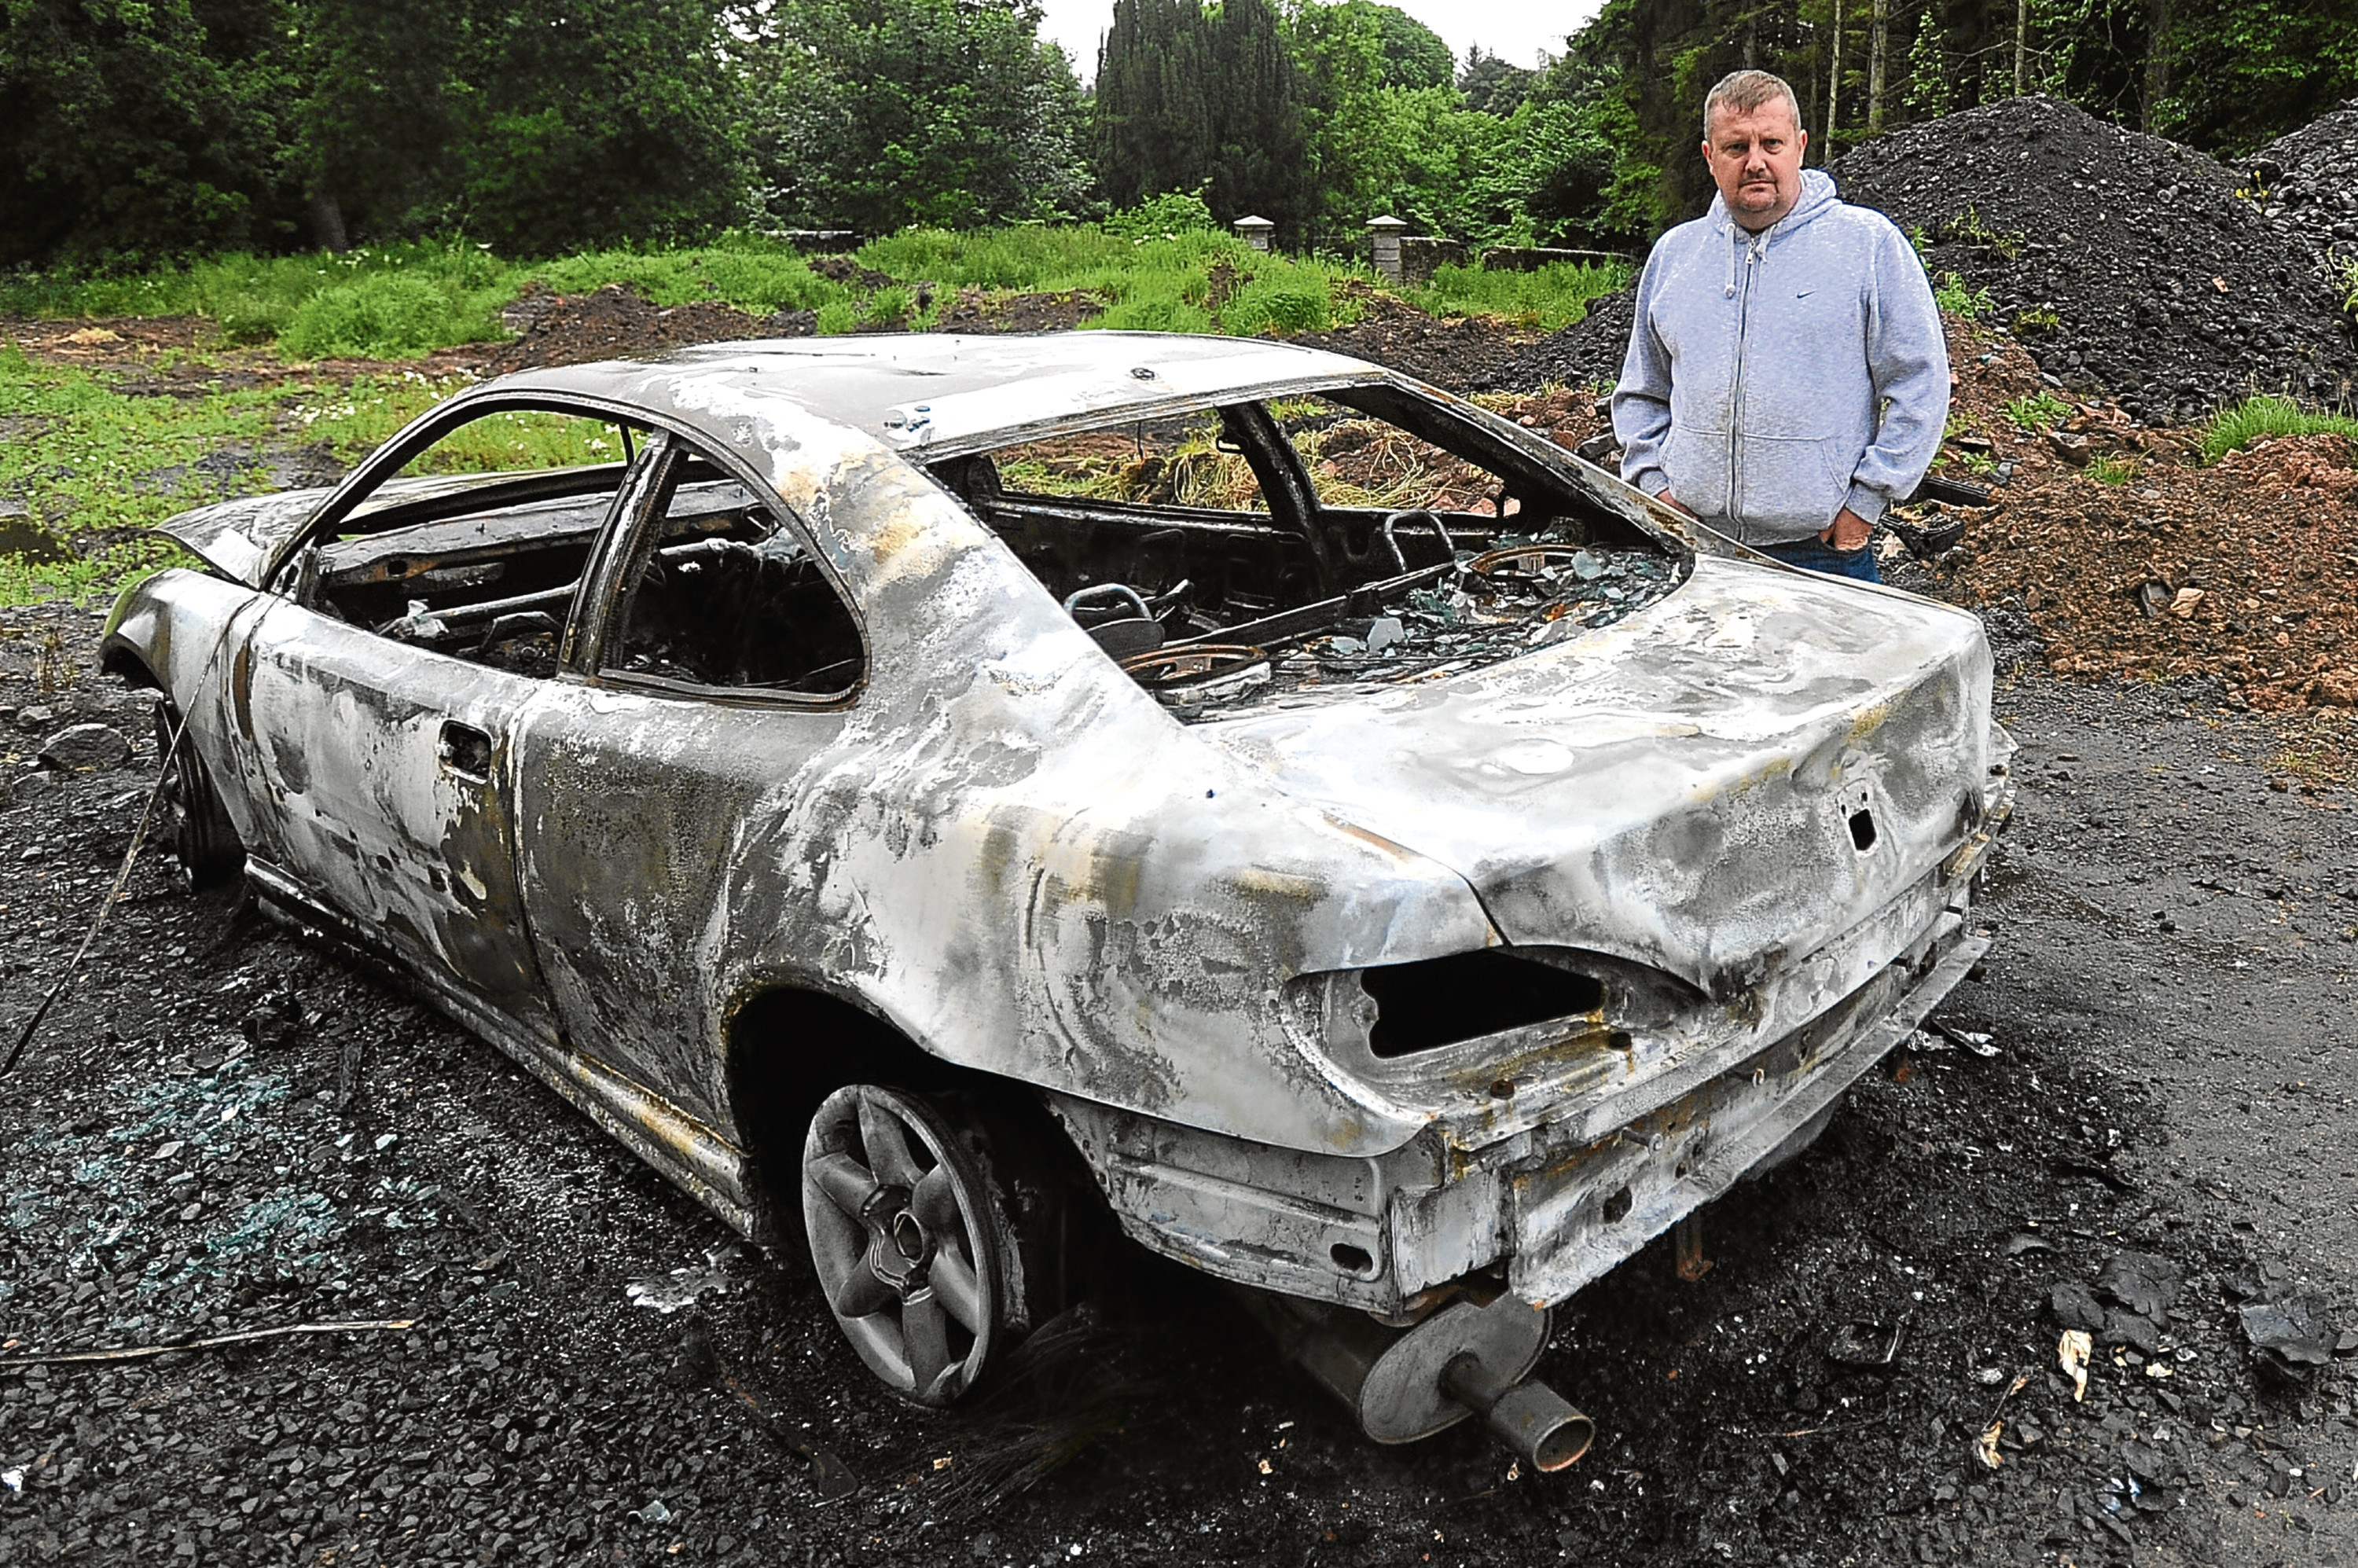 Dean Duncan has hit out at vandals after a burnt-out car was left in the grounds of Mains Castle — prompting fears his business could be affected.